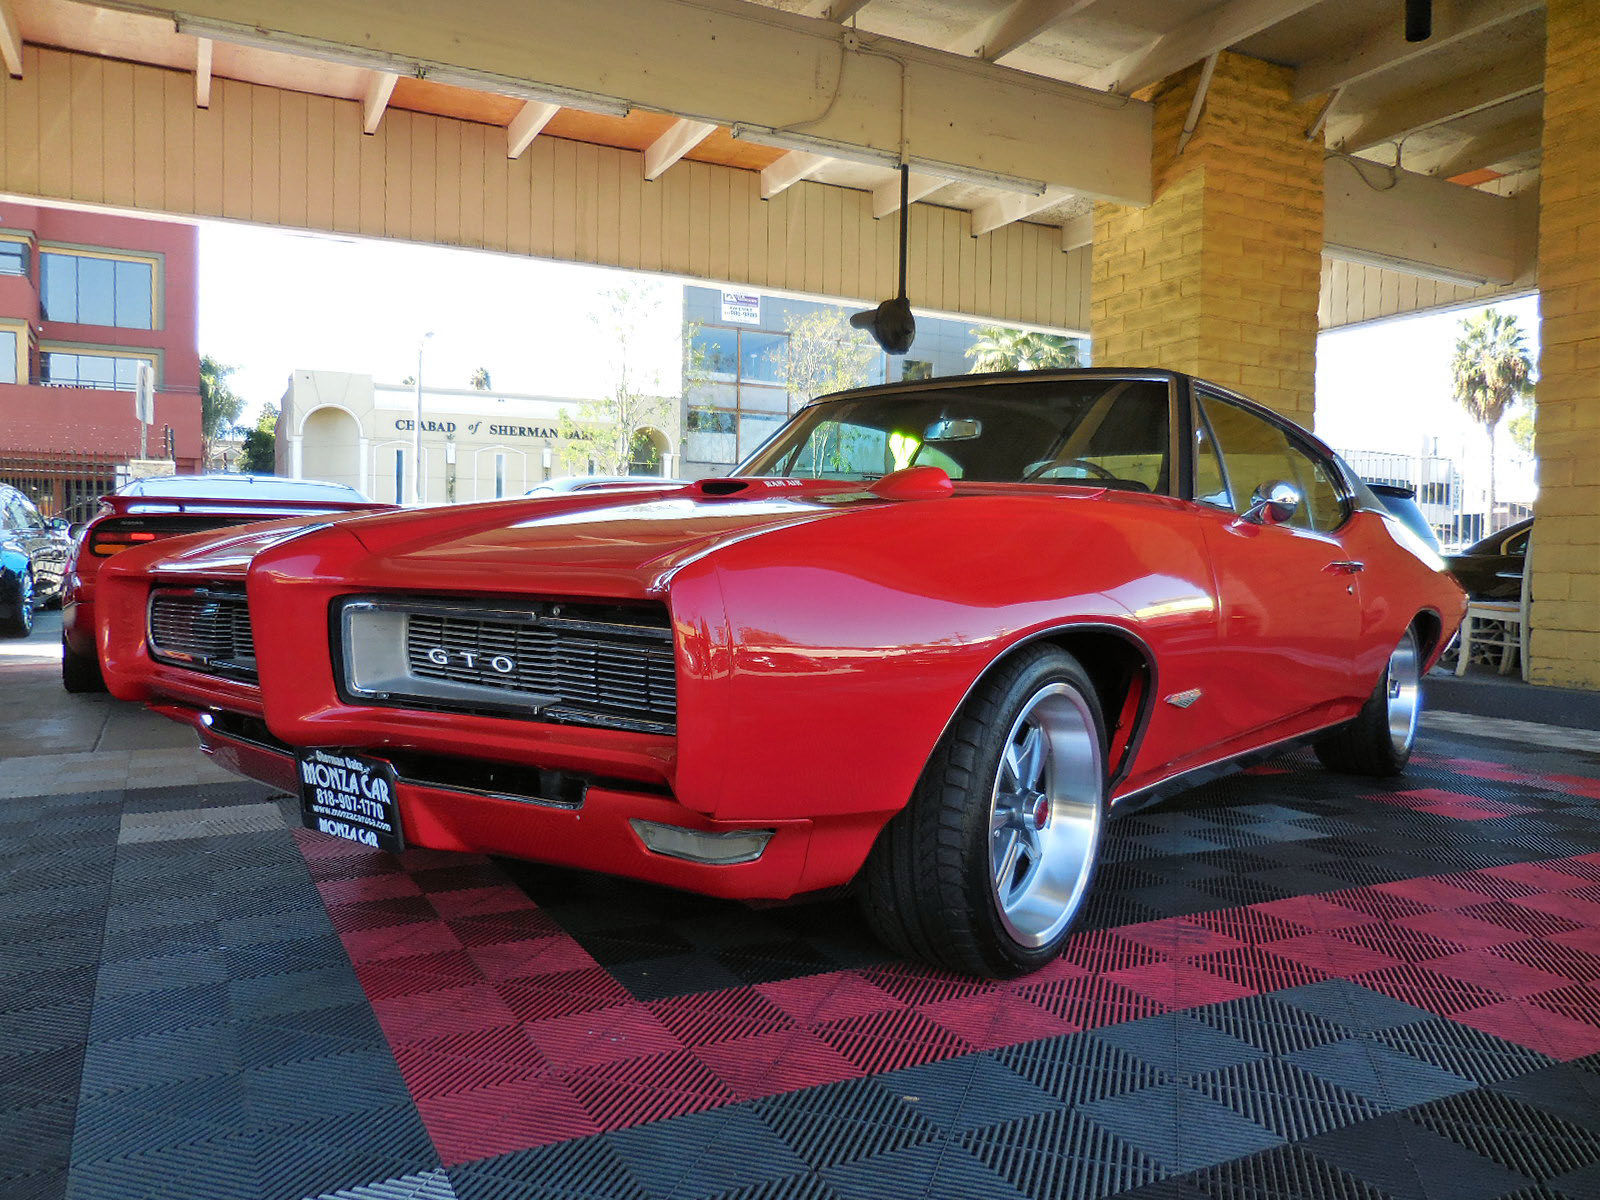 1967 Gto For Sale >> GTO Archives - Project Cars For Sale